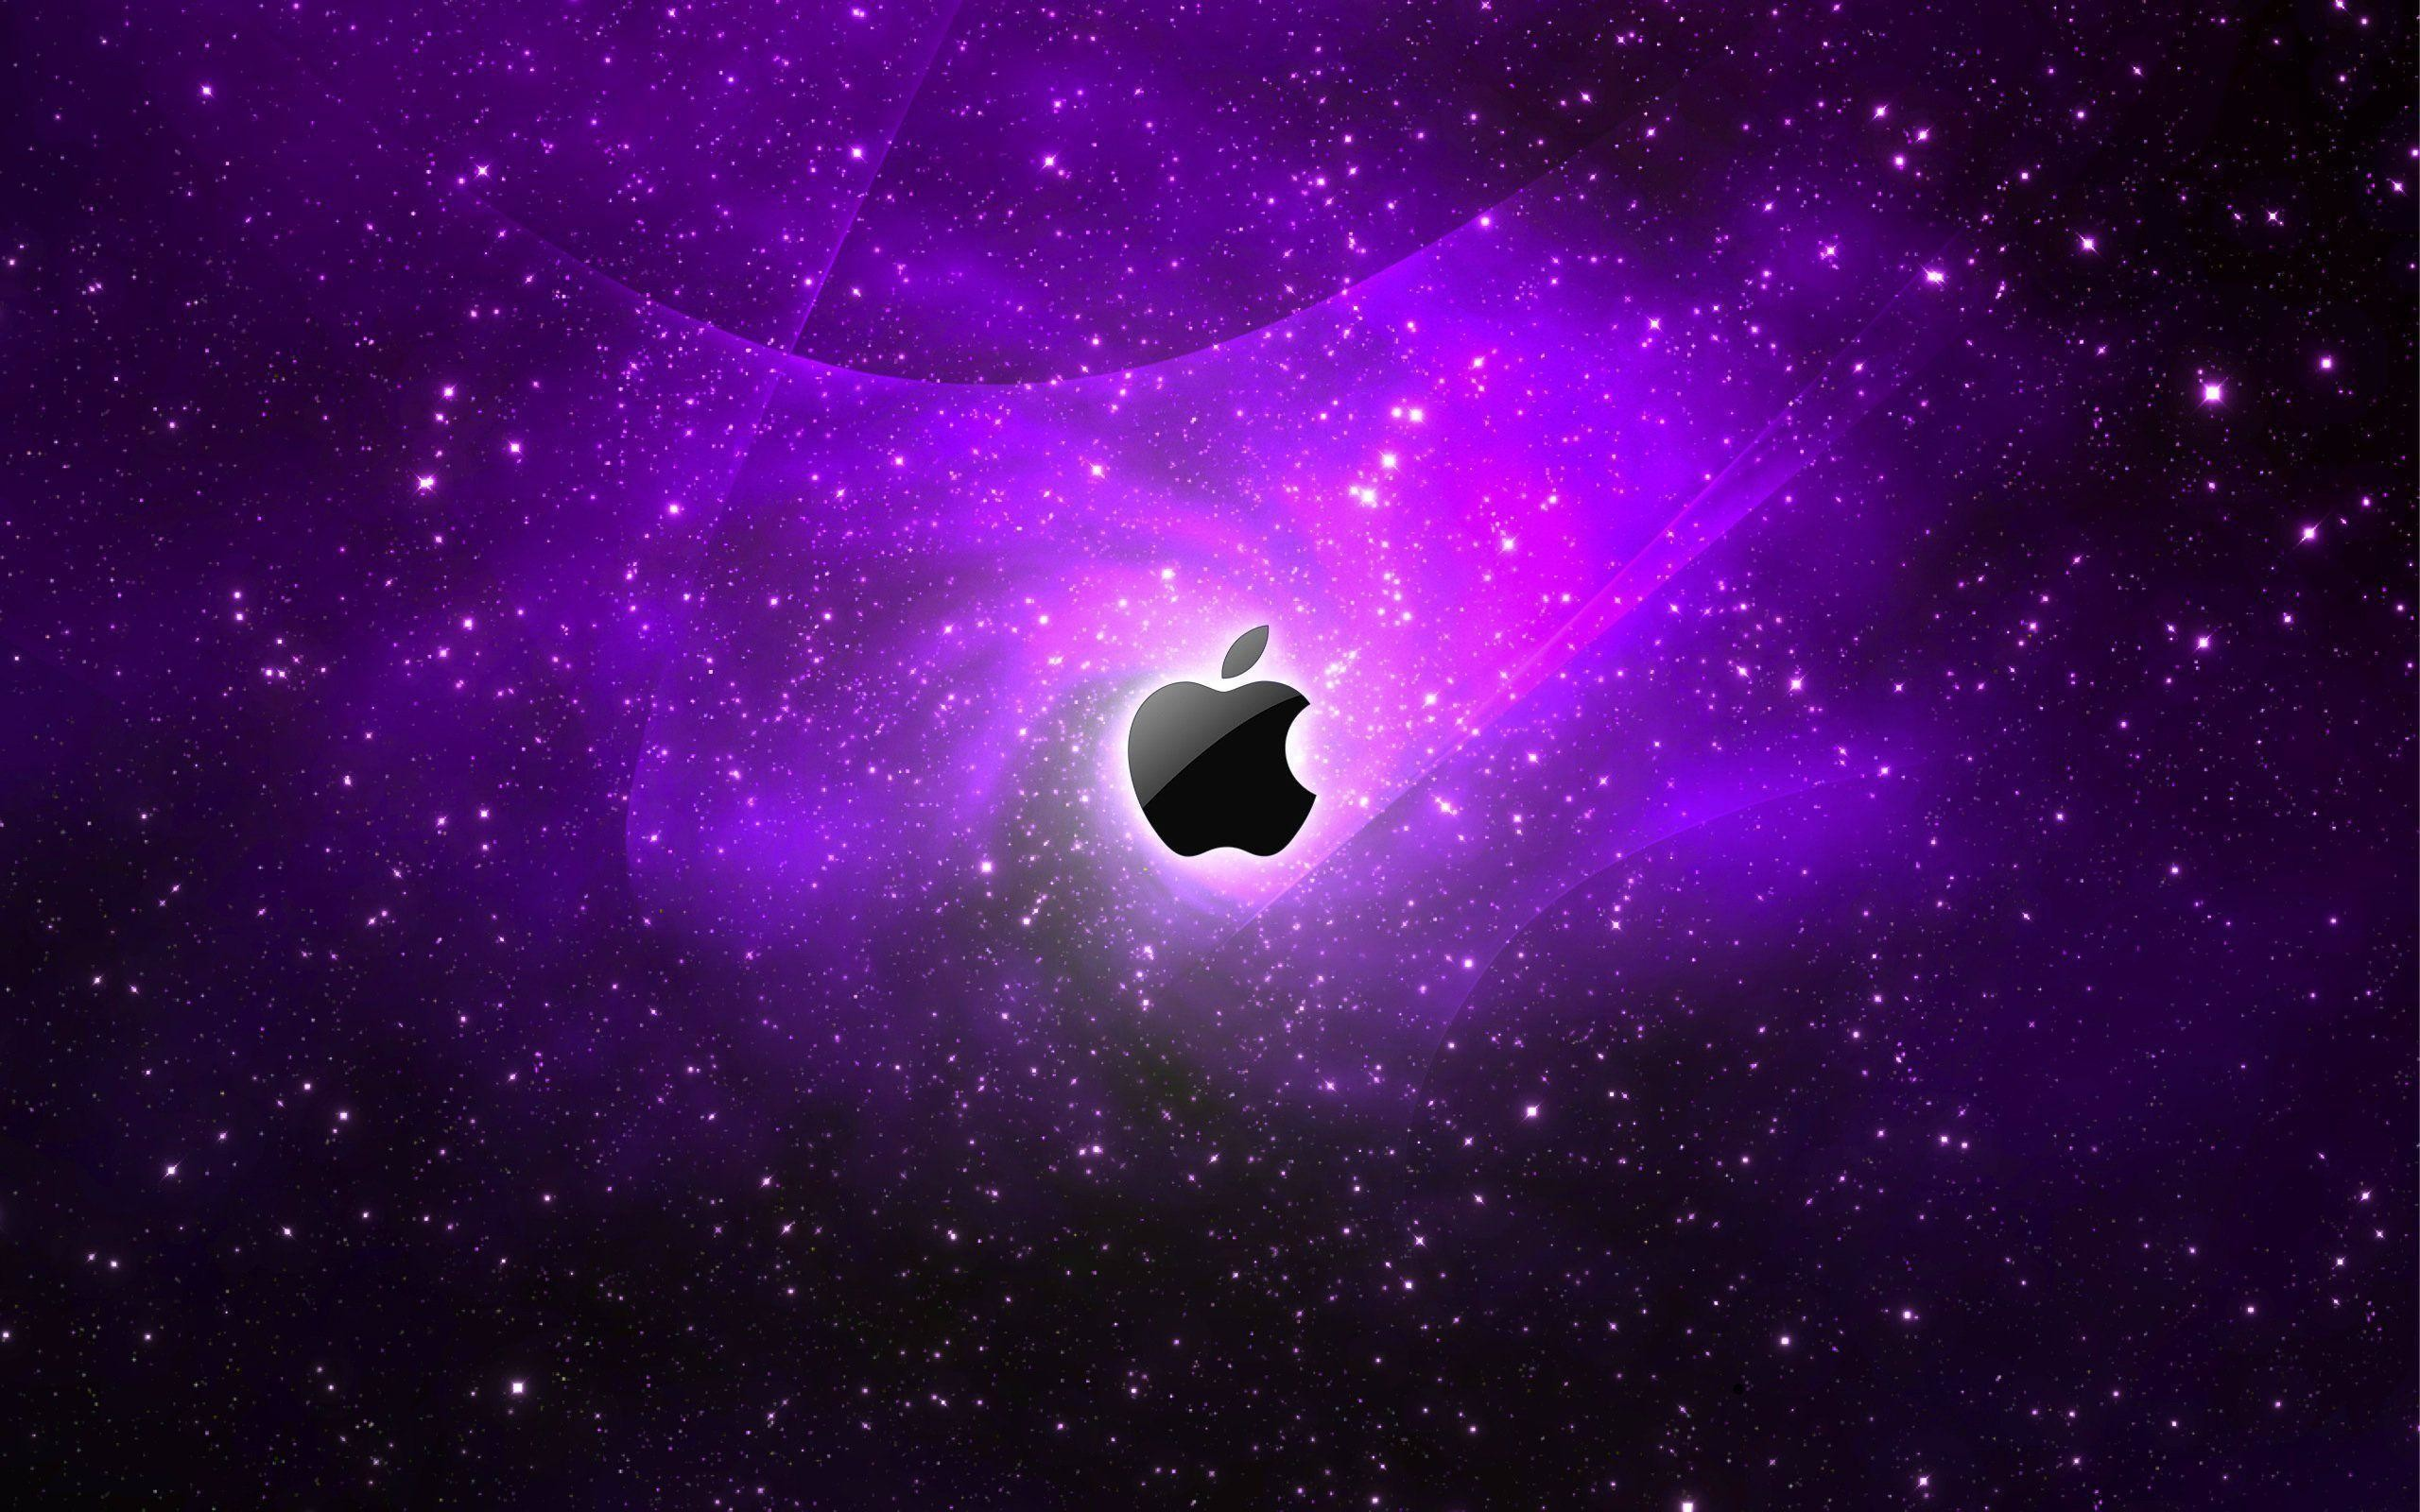 Purple Galaxy Wallpaper Iphone Images & Pictures – Becuo